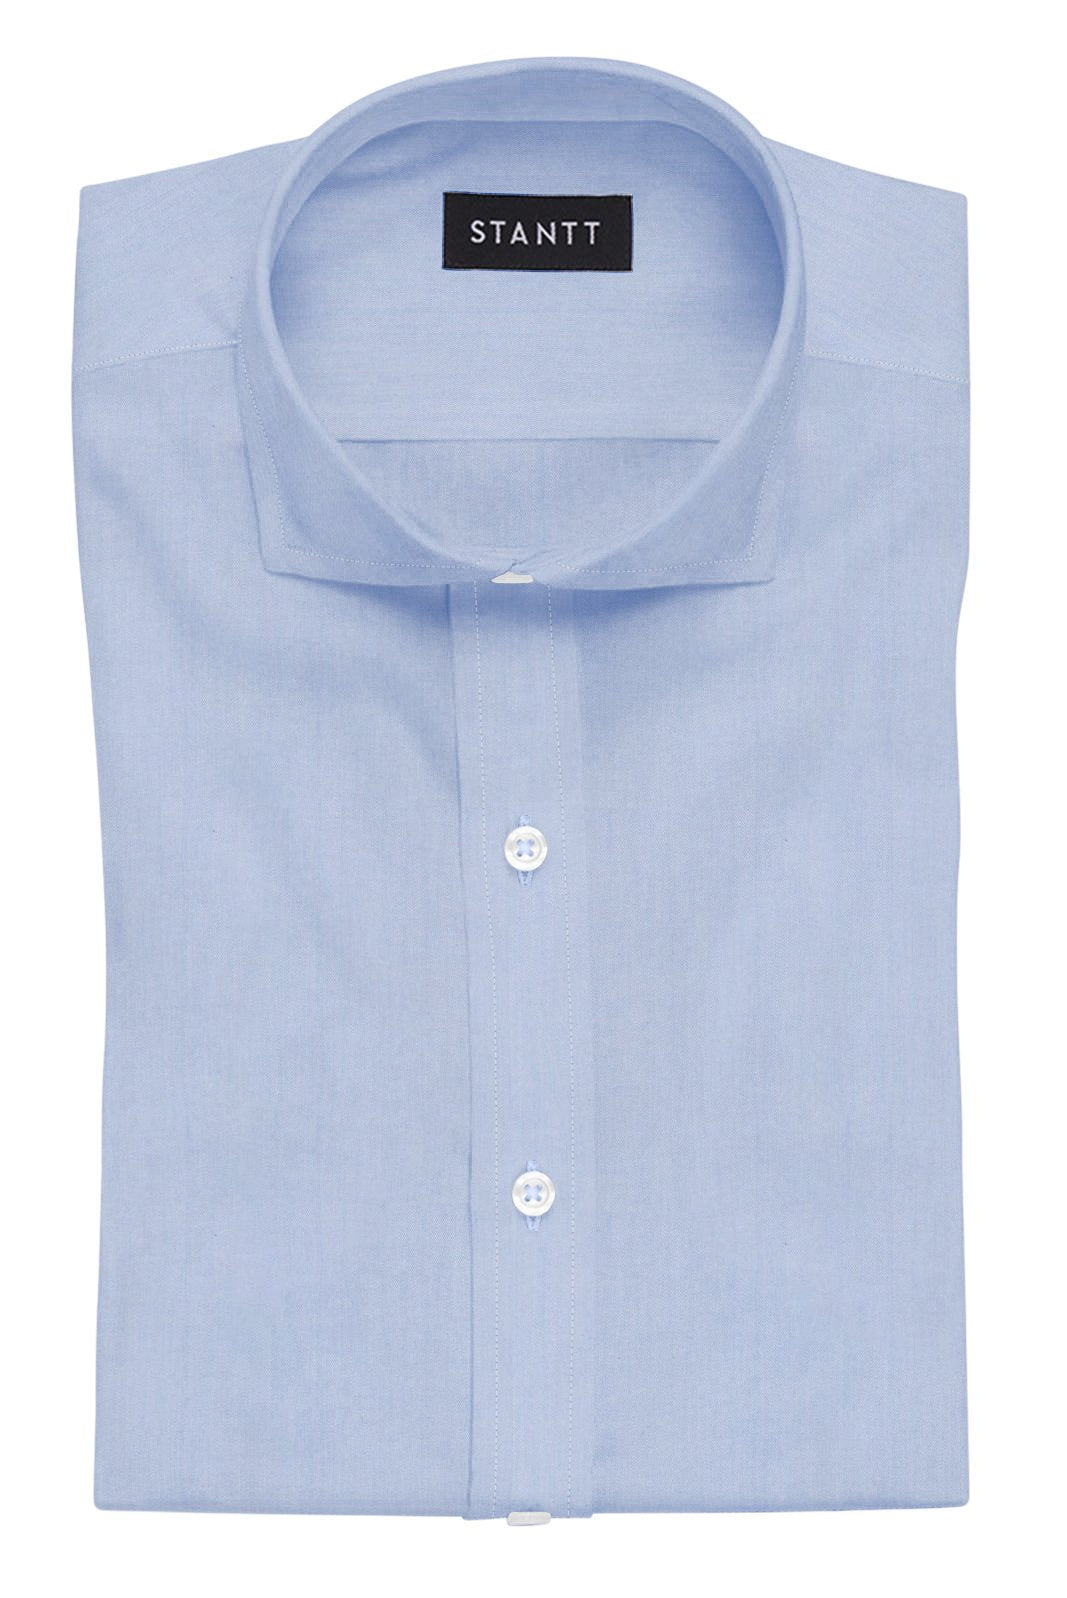 Wrinkle-Resistant Light Blue Twill: Cutaway Collar, French Cuff